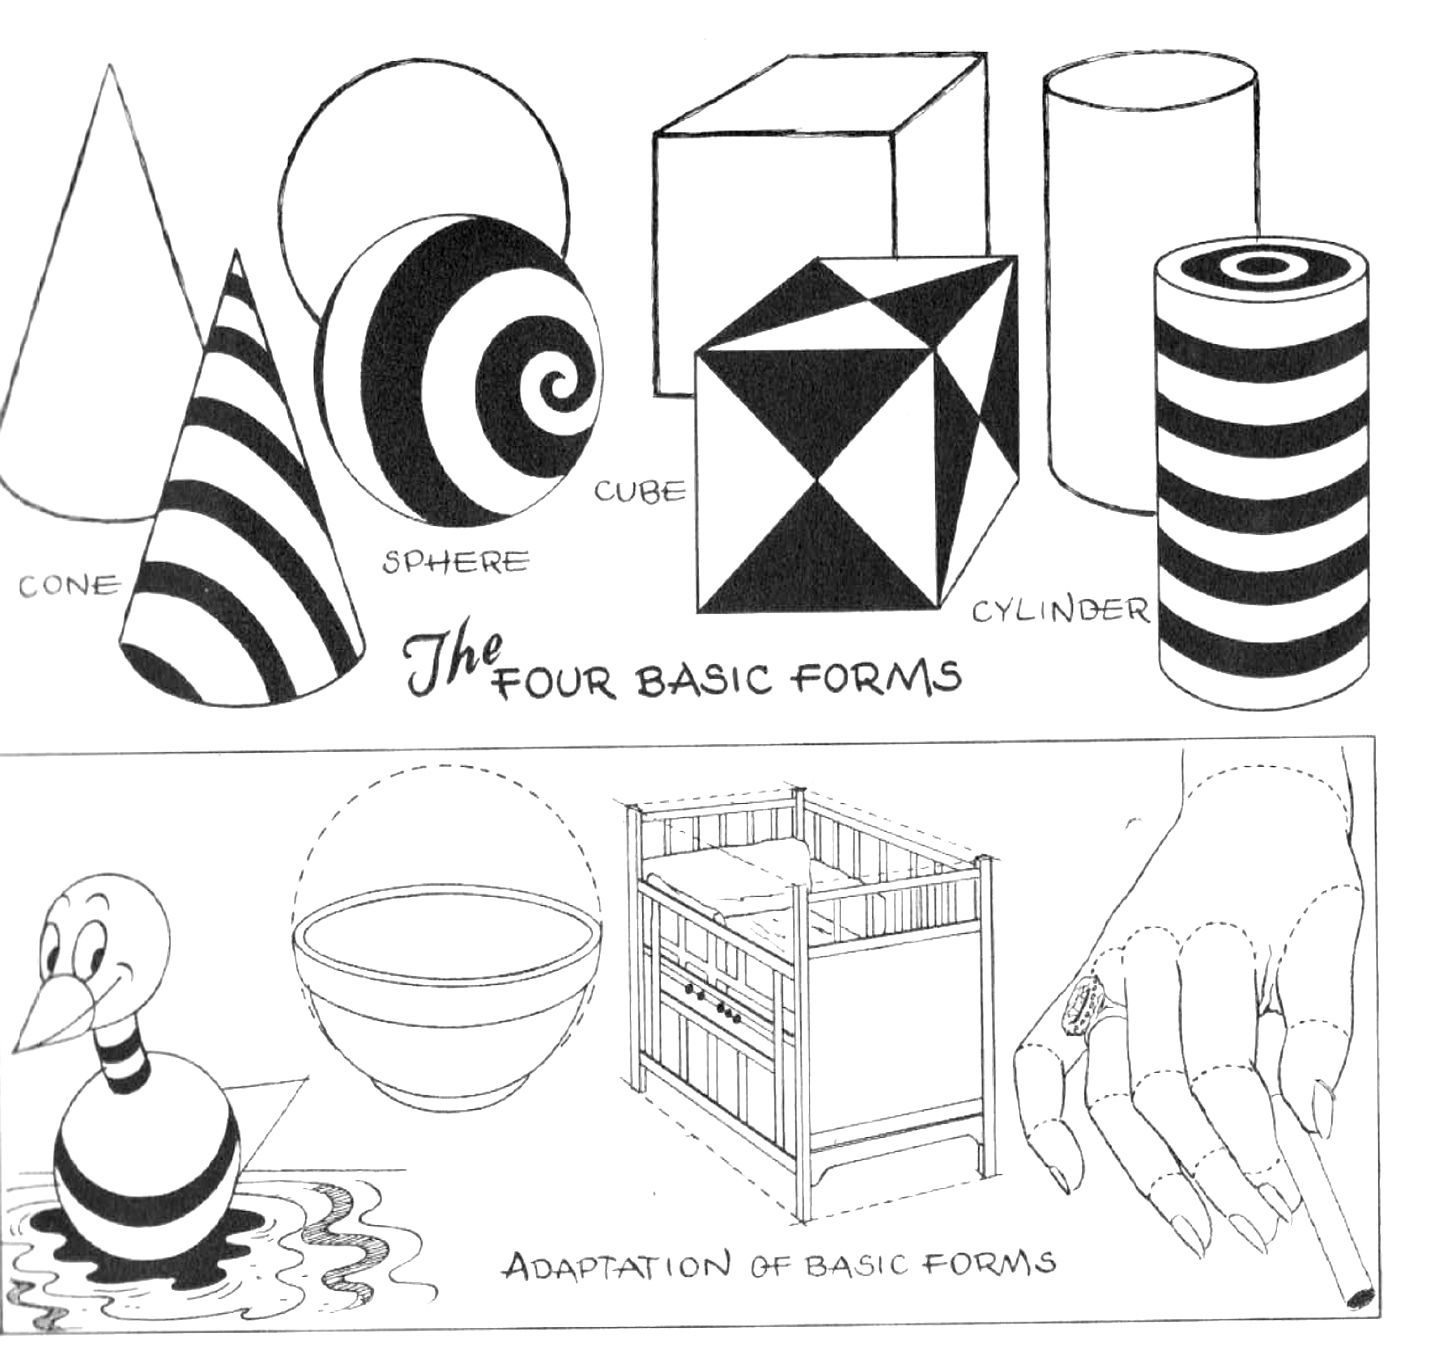 How to Learn to Draw With Basic Shapes | Our Pastimes